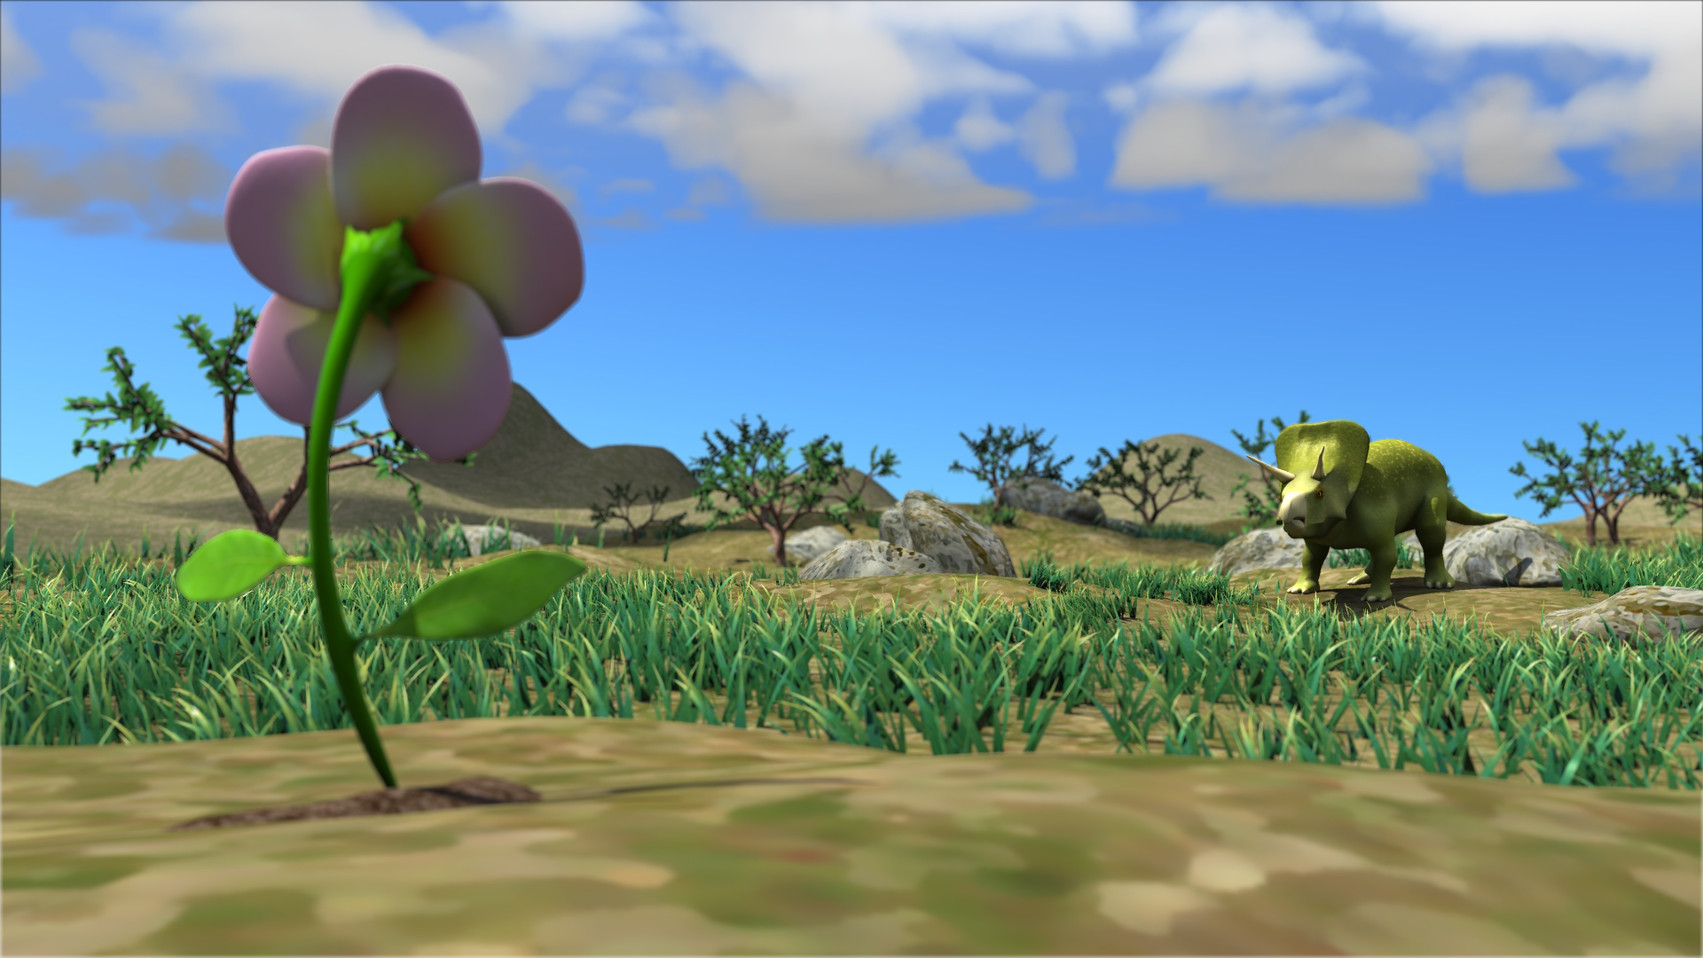 Thesis film screenshot. Created all elements of the shot.